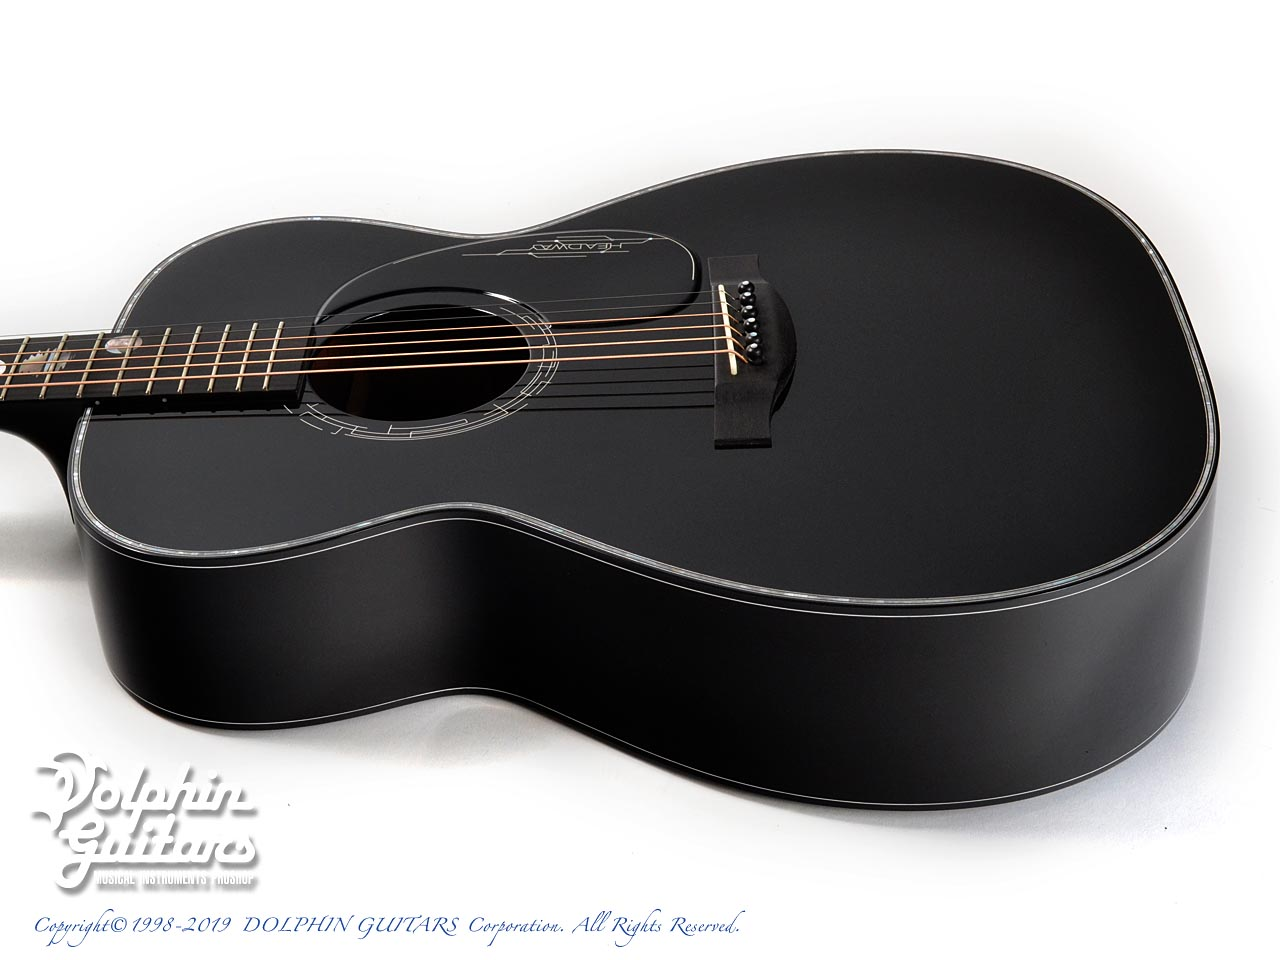 HEADWAY: HF-JET BLACK DX with Custom Ogawa Inlay (2)